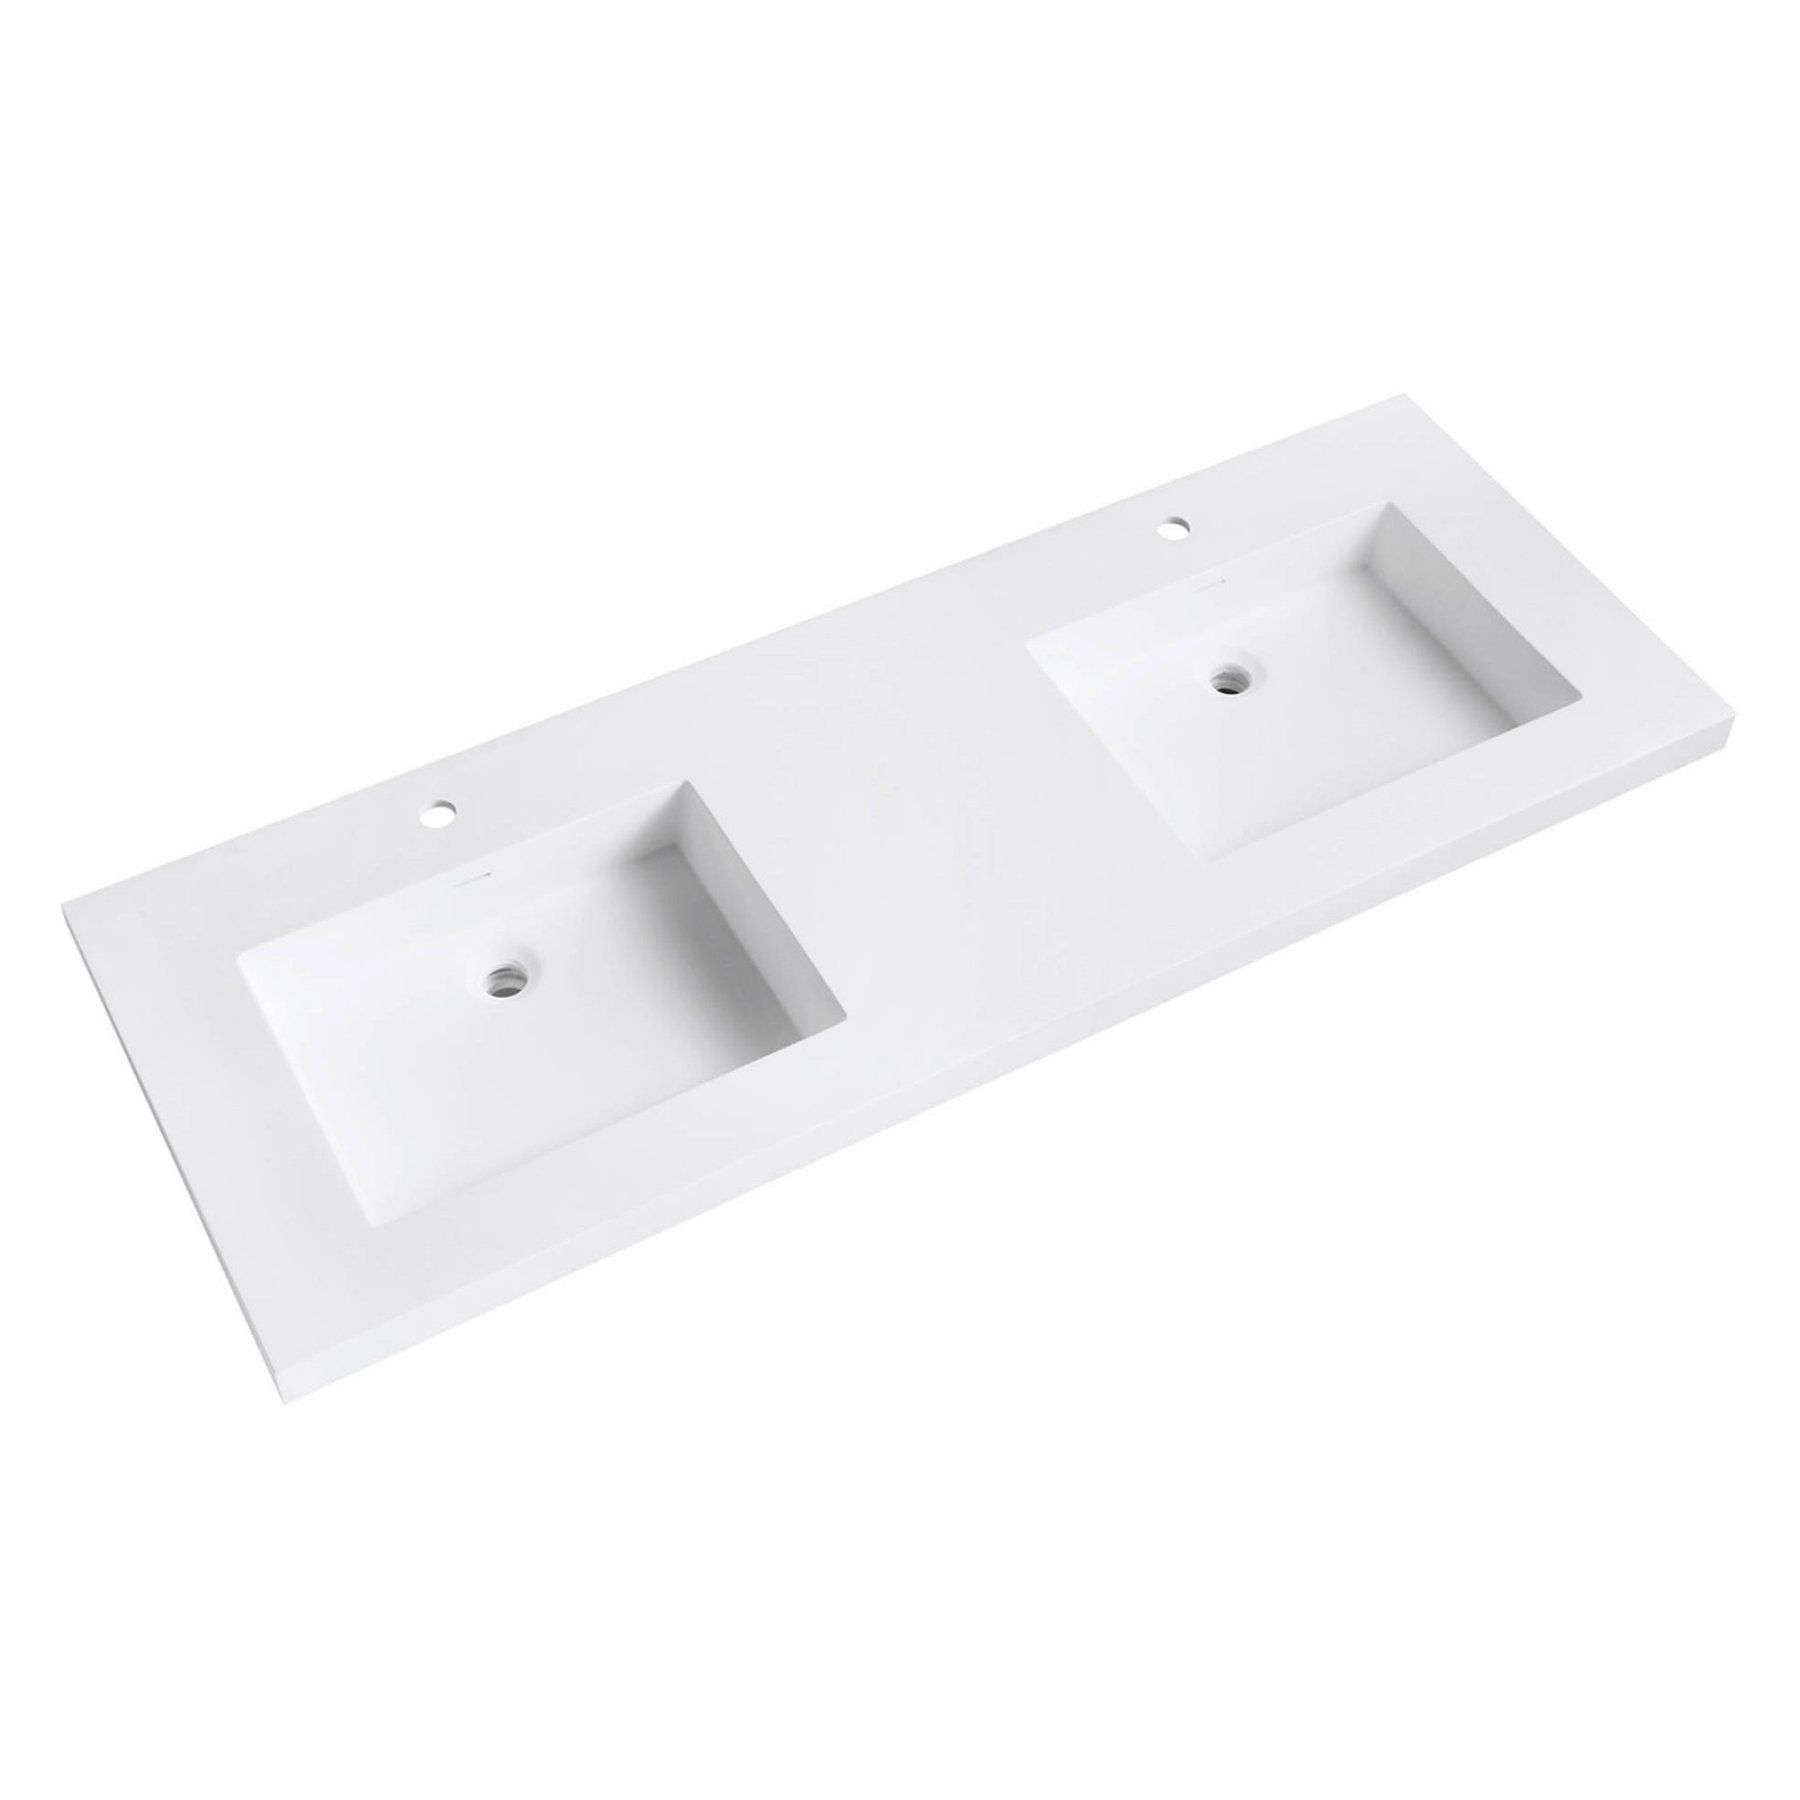 Acrylic Double Sink Vanity Top With Integrated Sinks Vut61wt